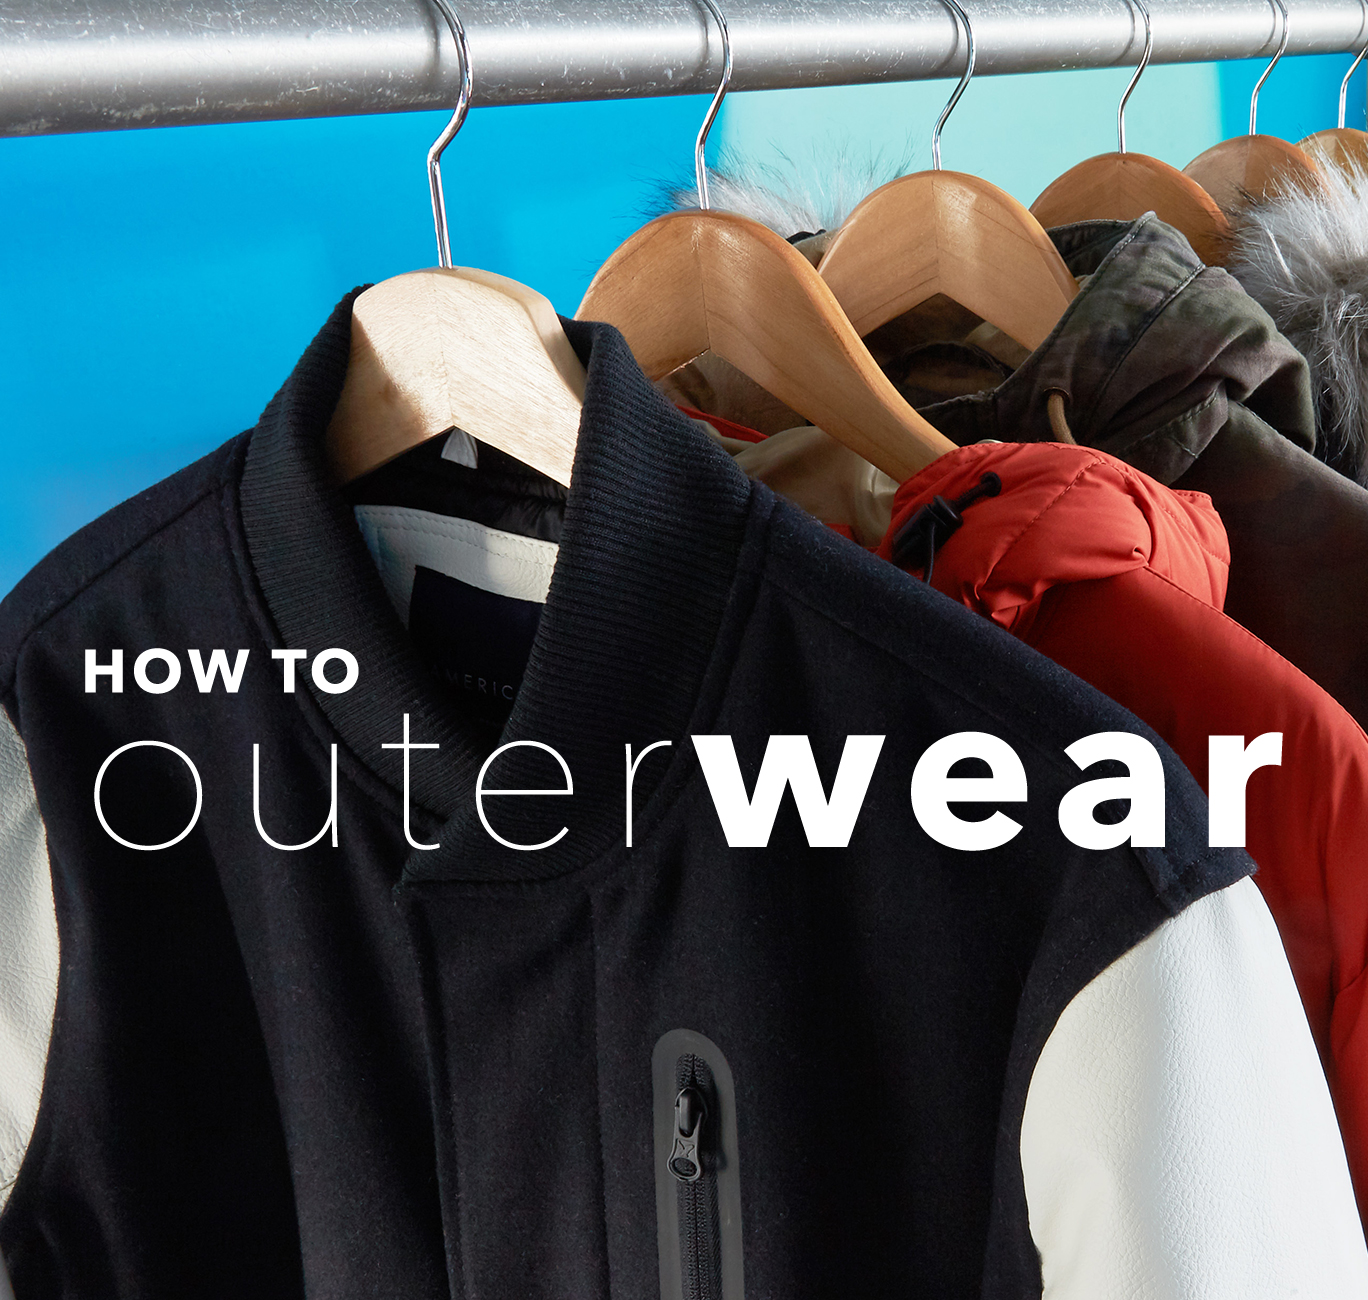 assortment of AE outerwear product